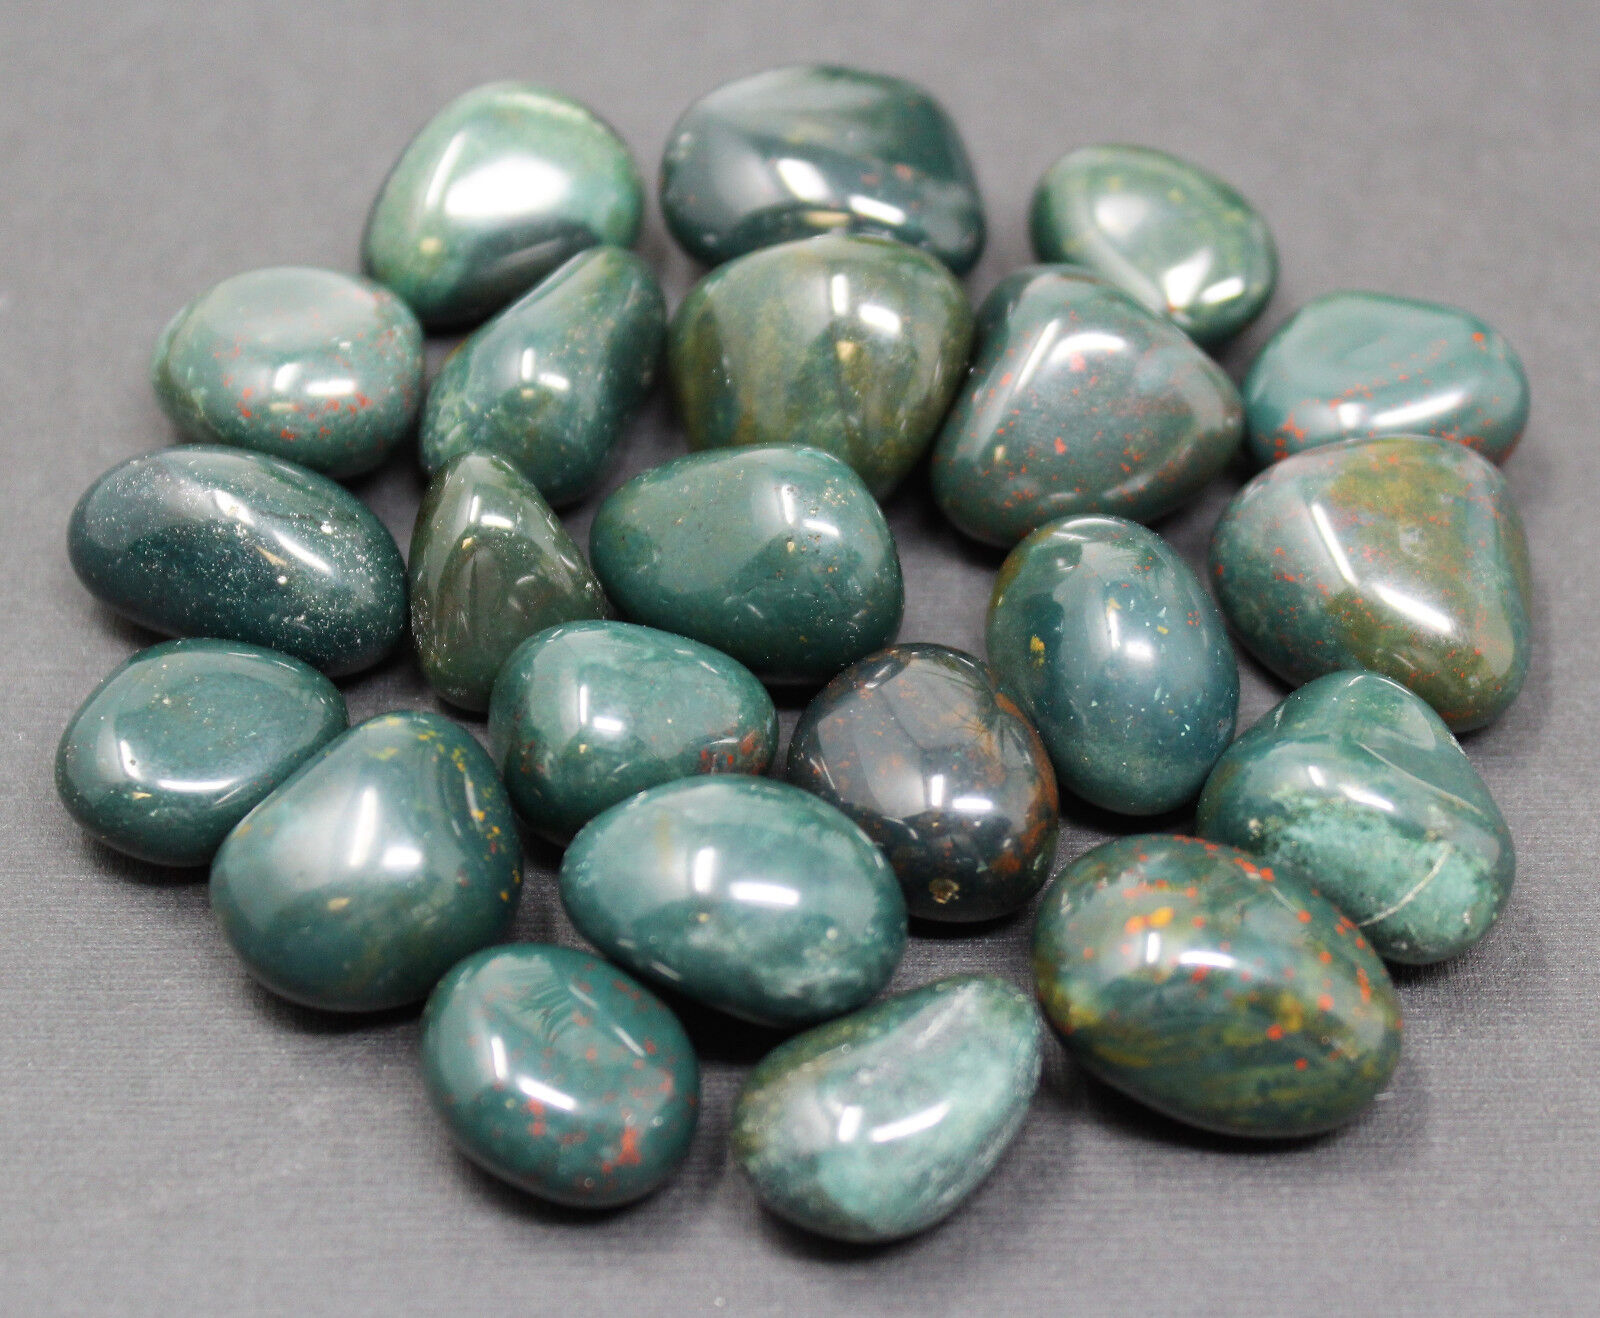 Tumbled Stones: You Choose the Type (Gemstone Reiki Crystal Healing Rock) List A